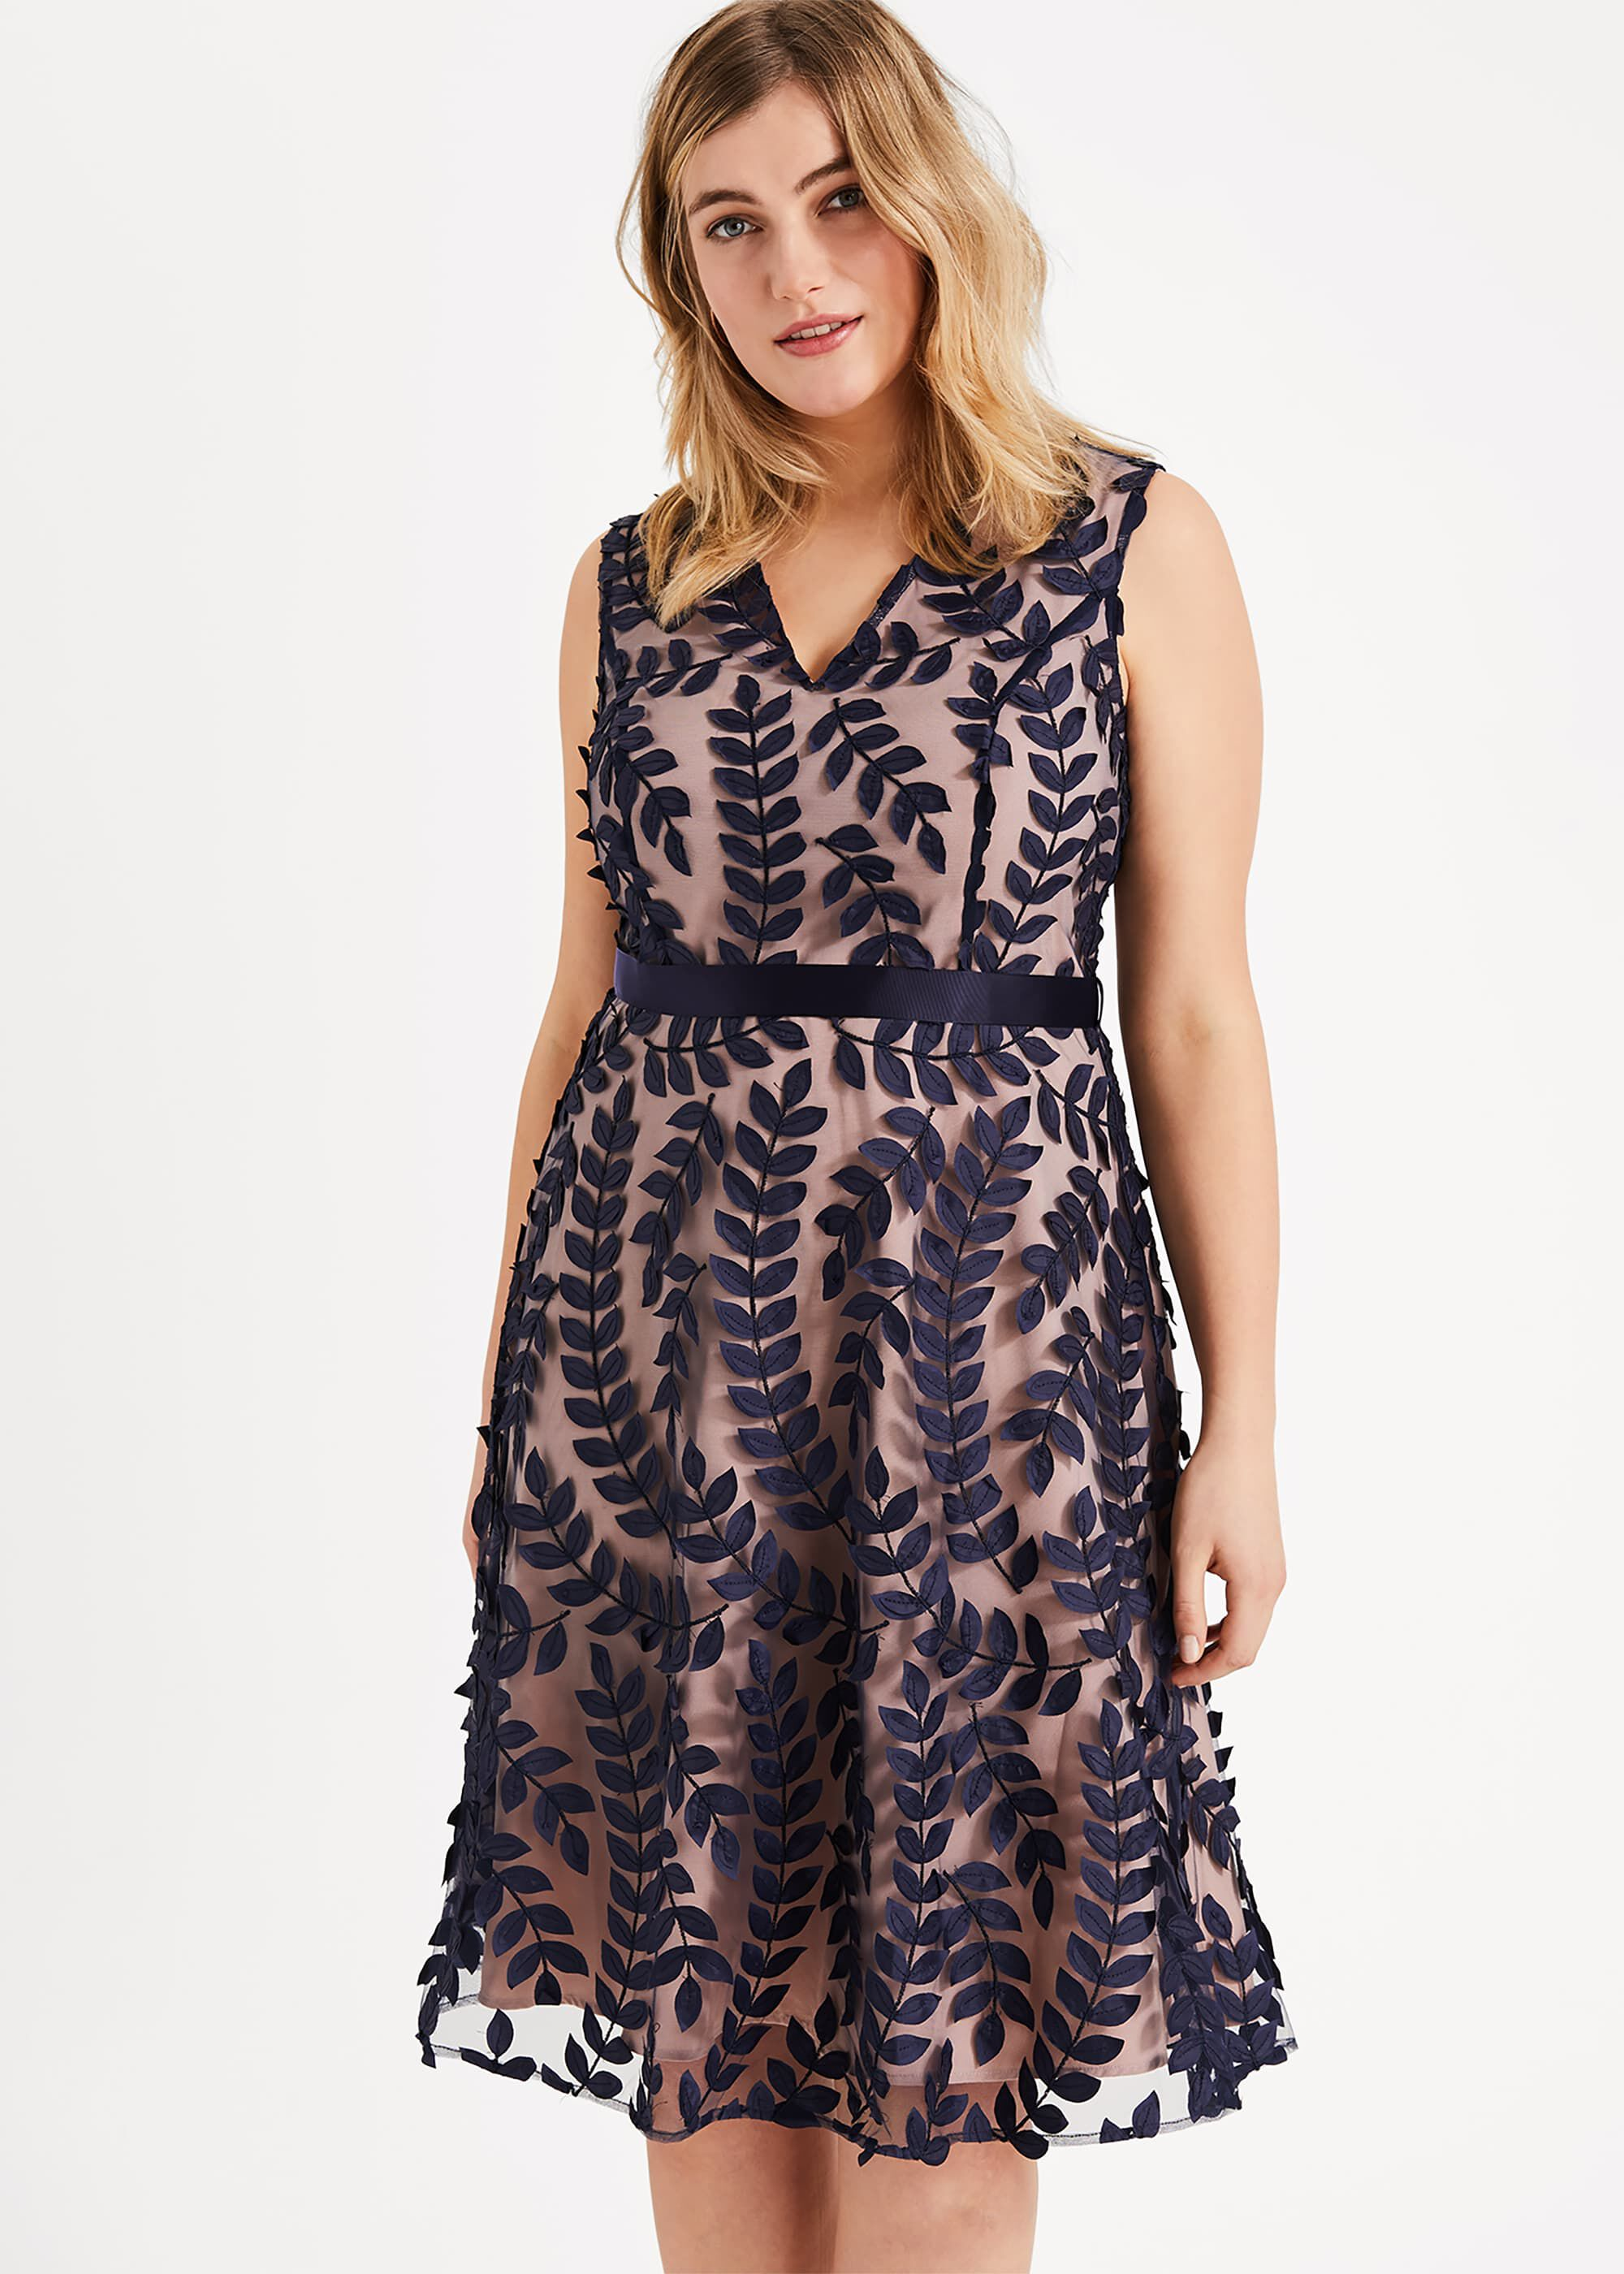 Studio 8 Evie Leaf Dress, Blue, Cocktail